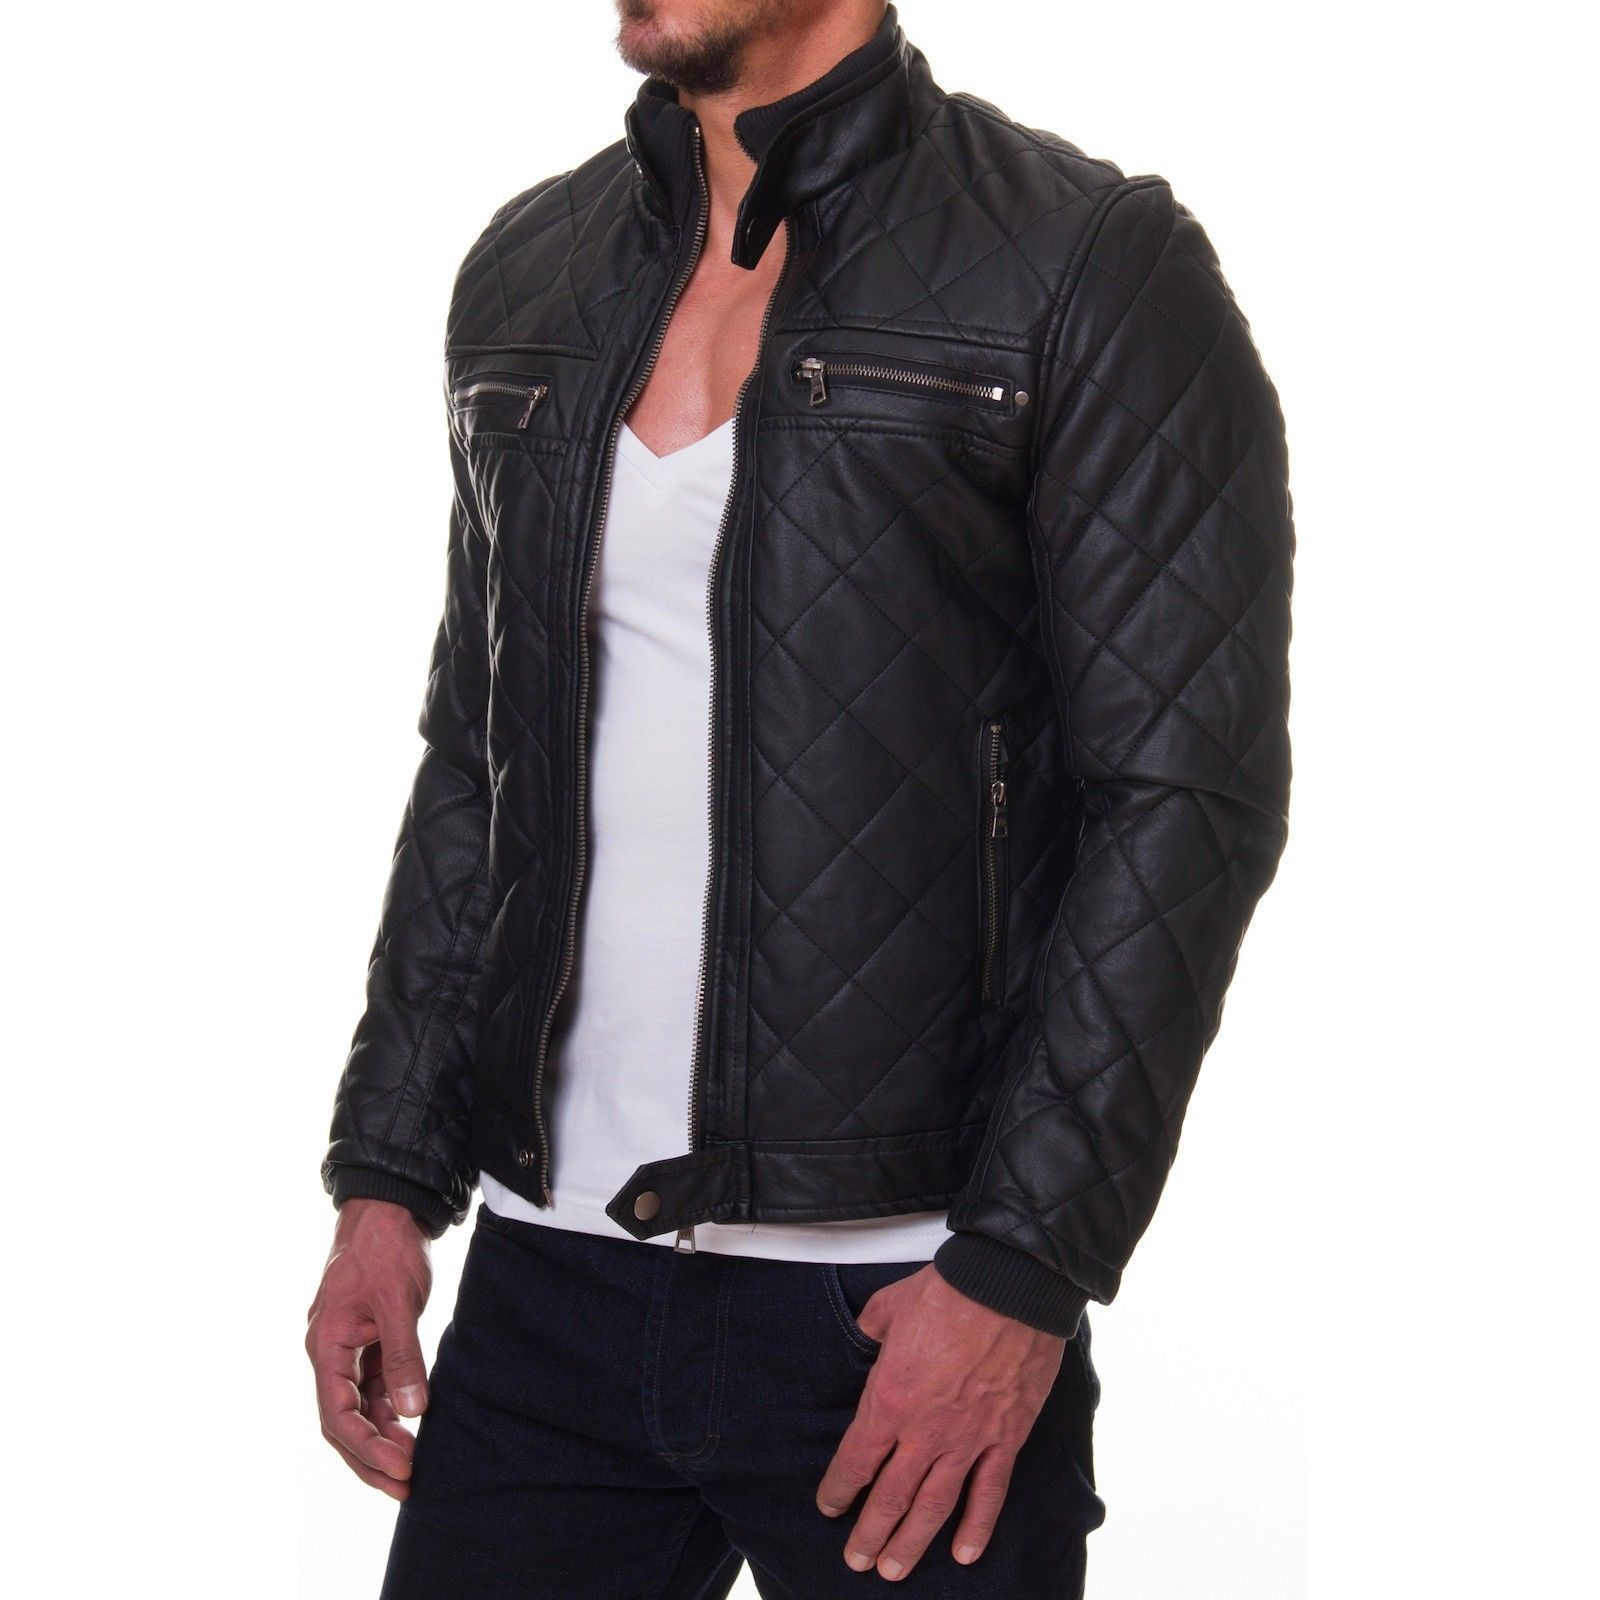 Veste homme blanche simili cuir neuf